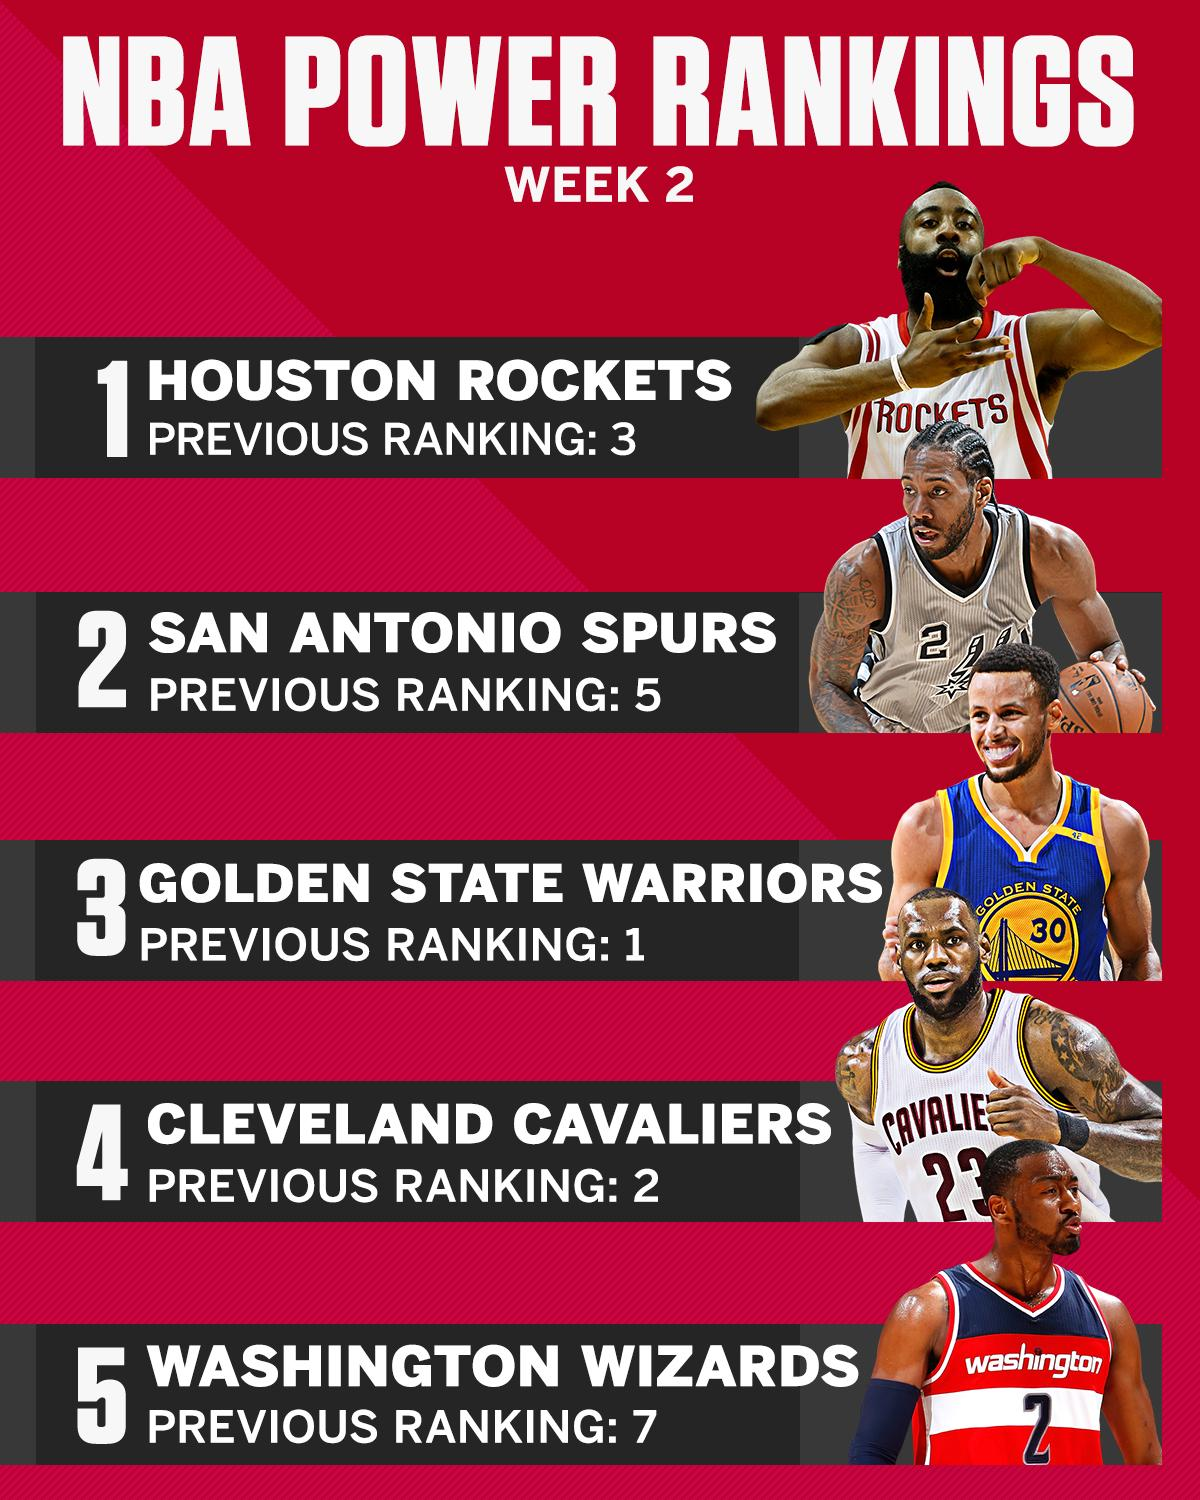 There has been quite the shakeup in our Power Rankings heading into Week 2 of the season: https://t.co/tdywkSg87x https://t.co/xwFQBZYNCp